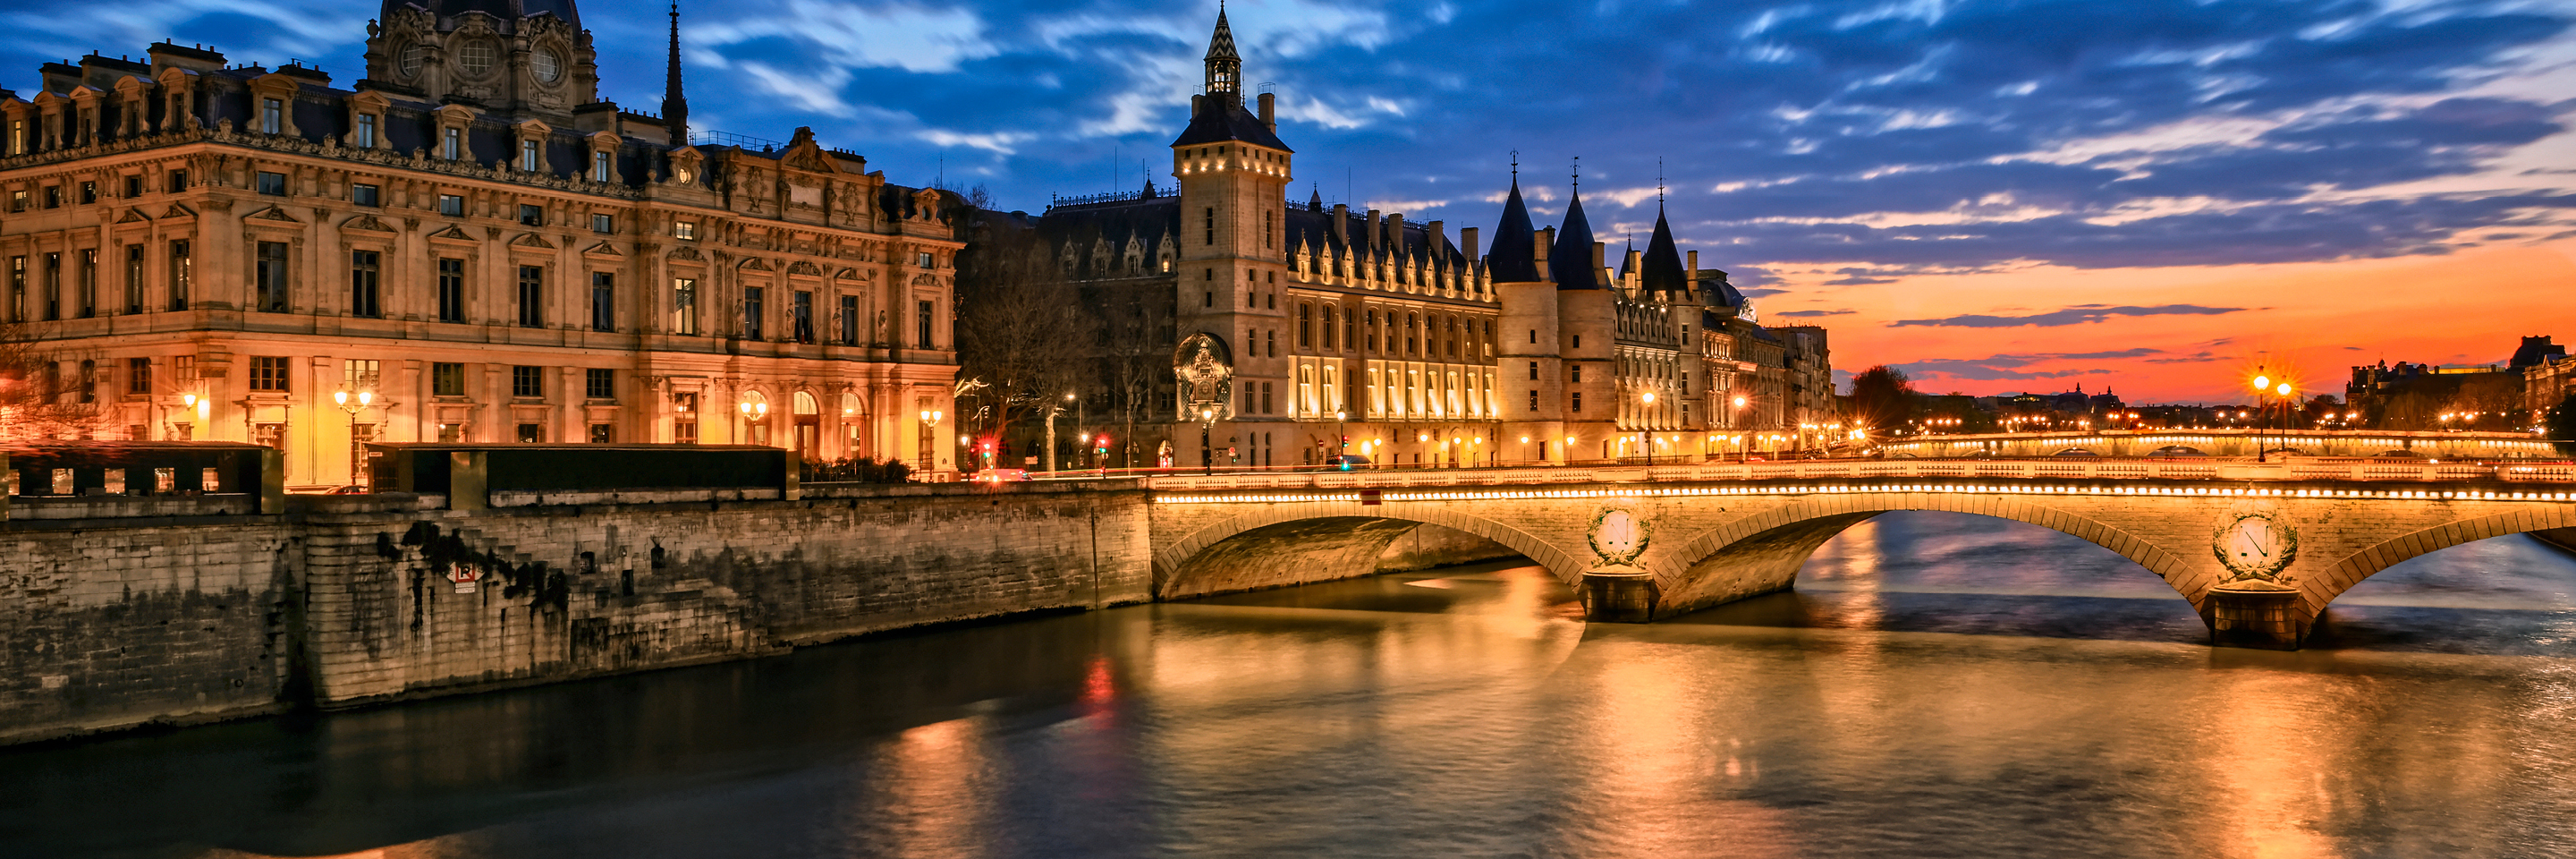 A Culinary Experience in Burgundy & Provence with 2 Nights in Nice & 2 Nights in Paris (Northbound)